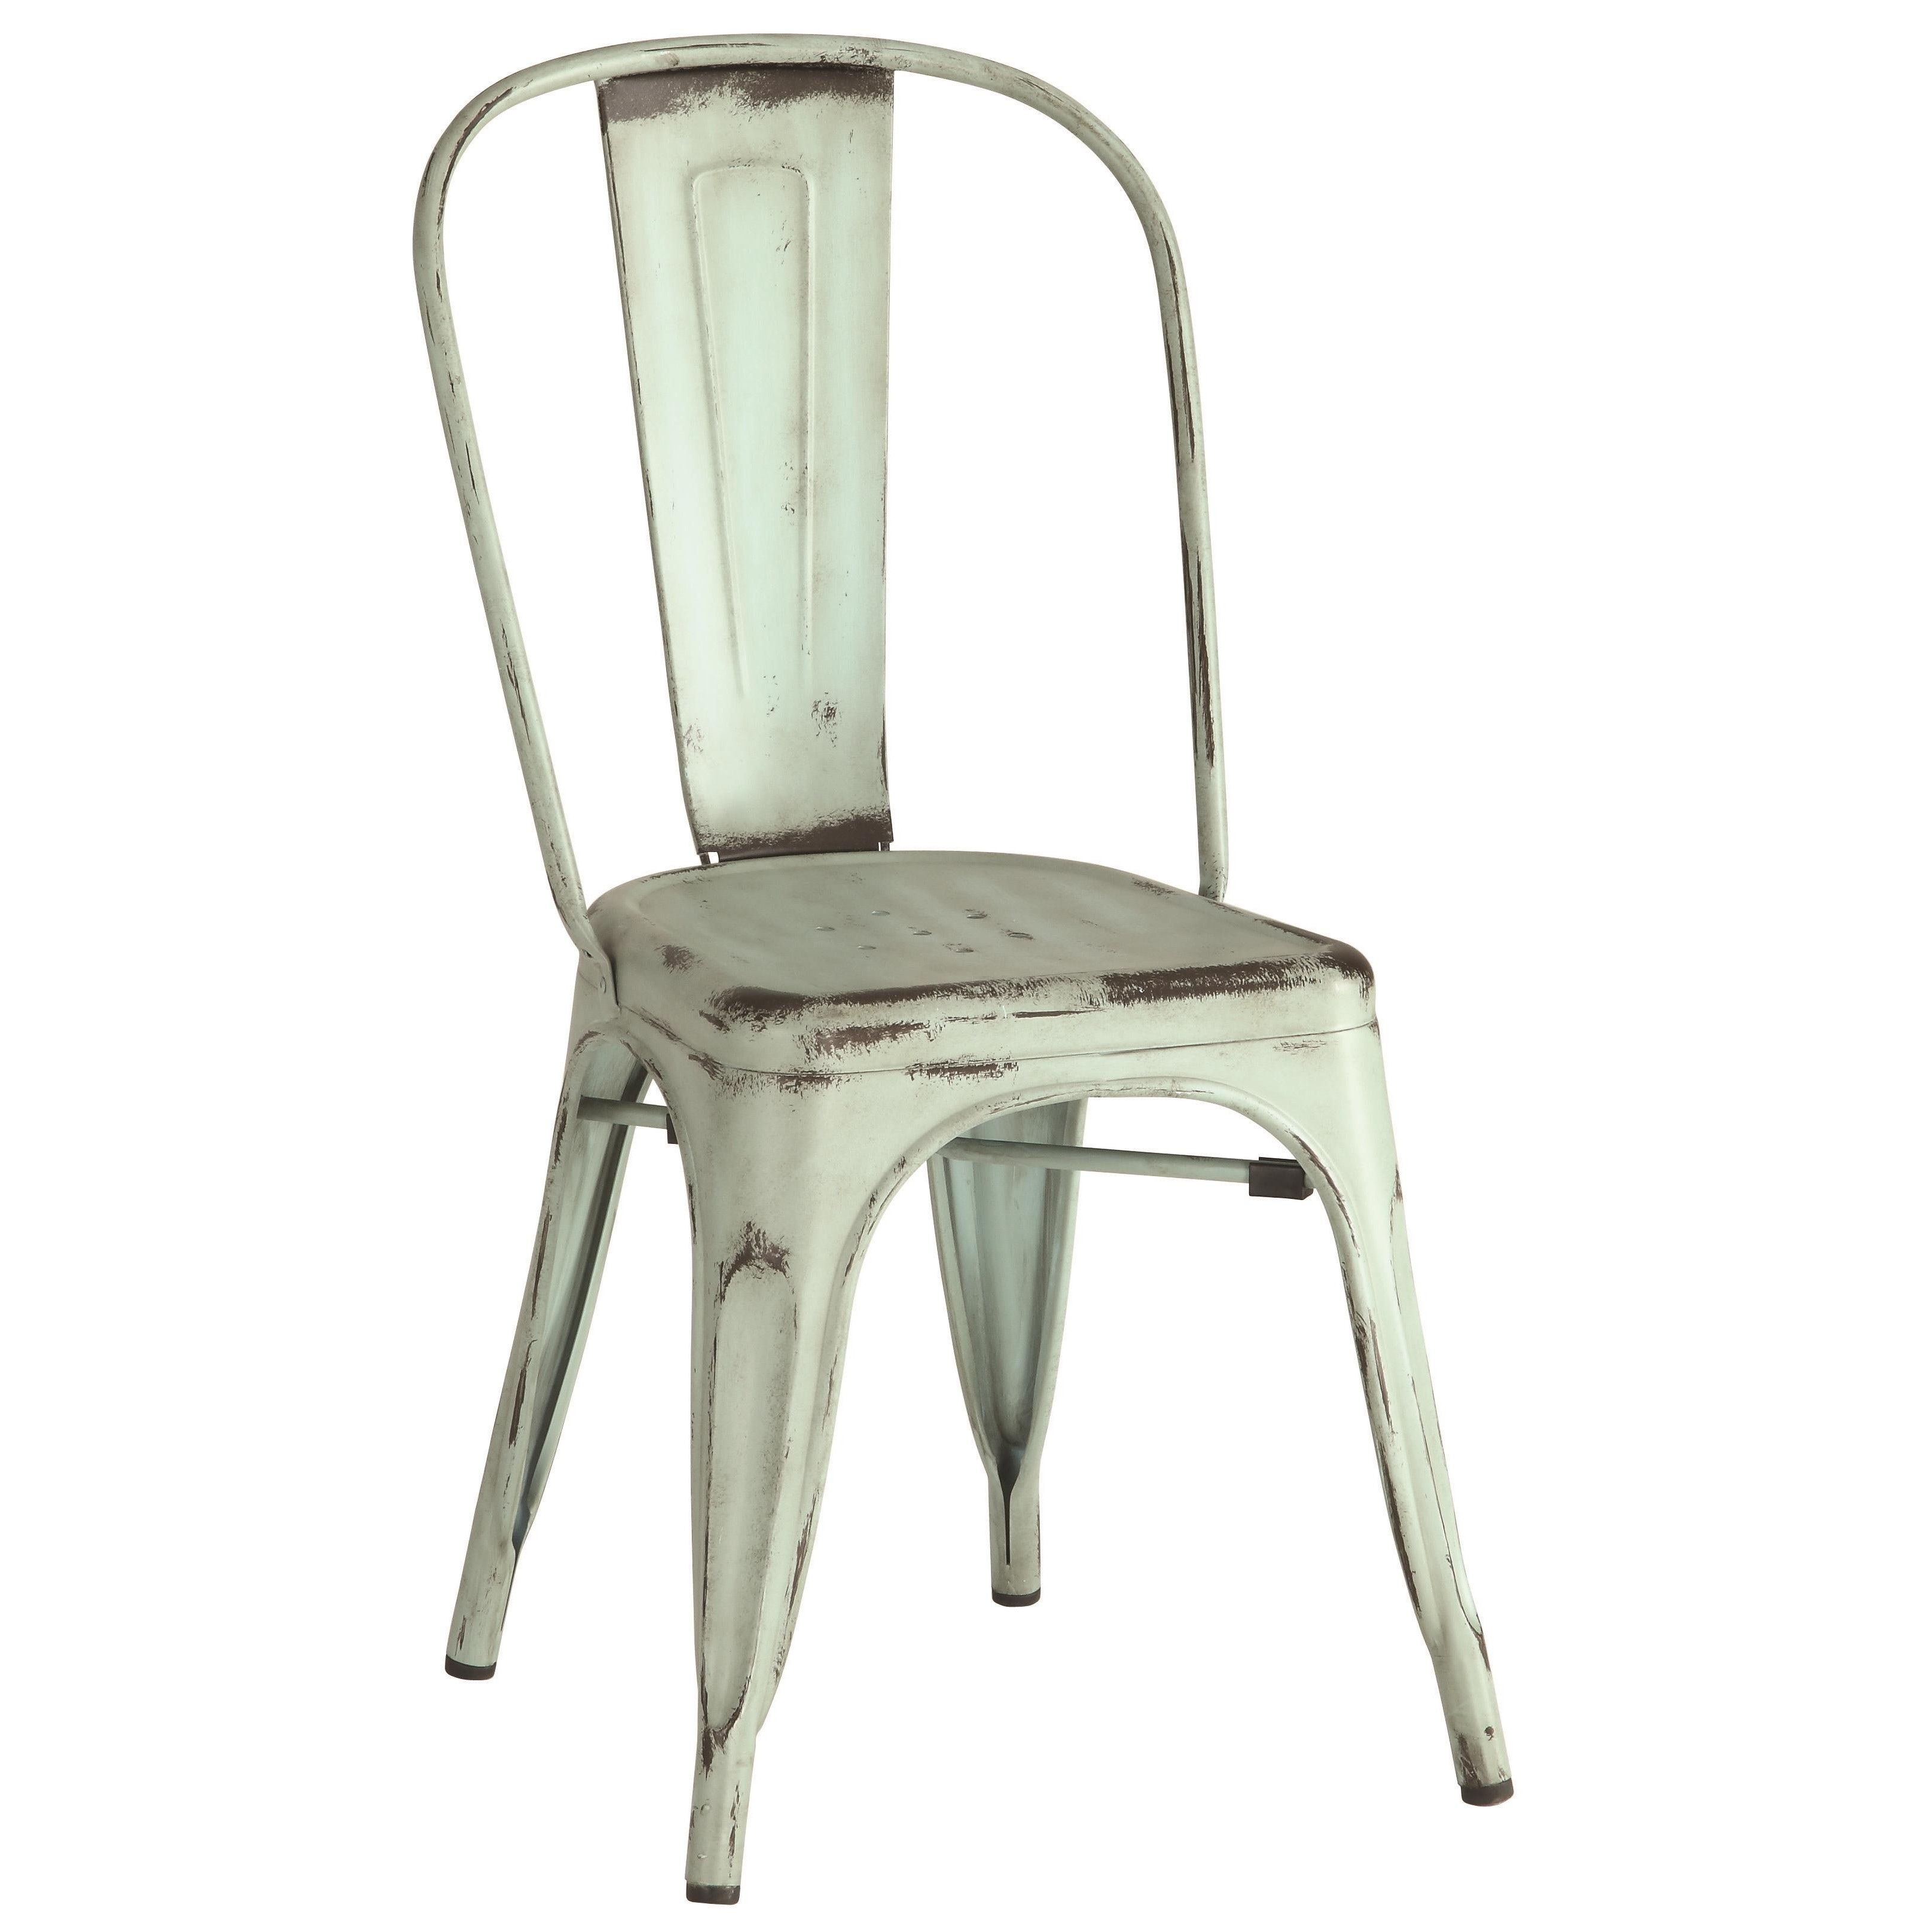 Vintage Distressed Rustic Design Green Metal Dining Chairs Set Of 4 Free Shipping Today 13454993